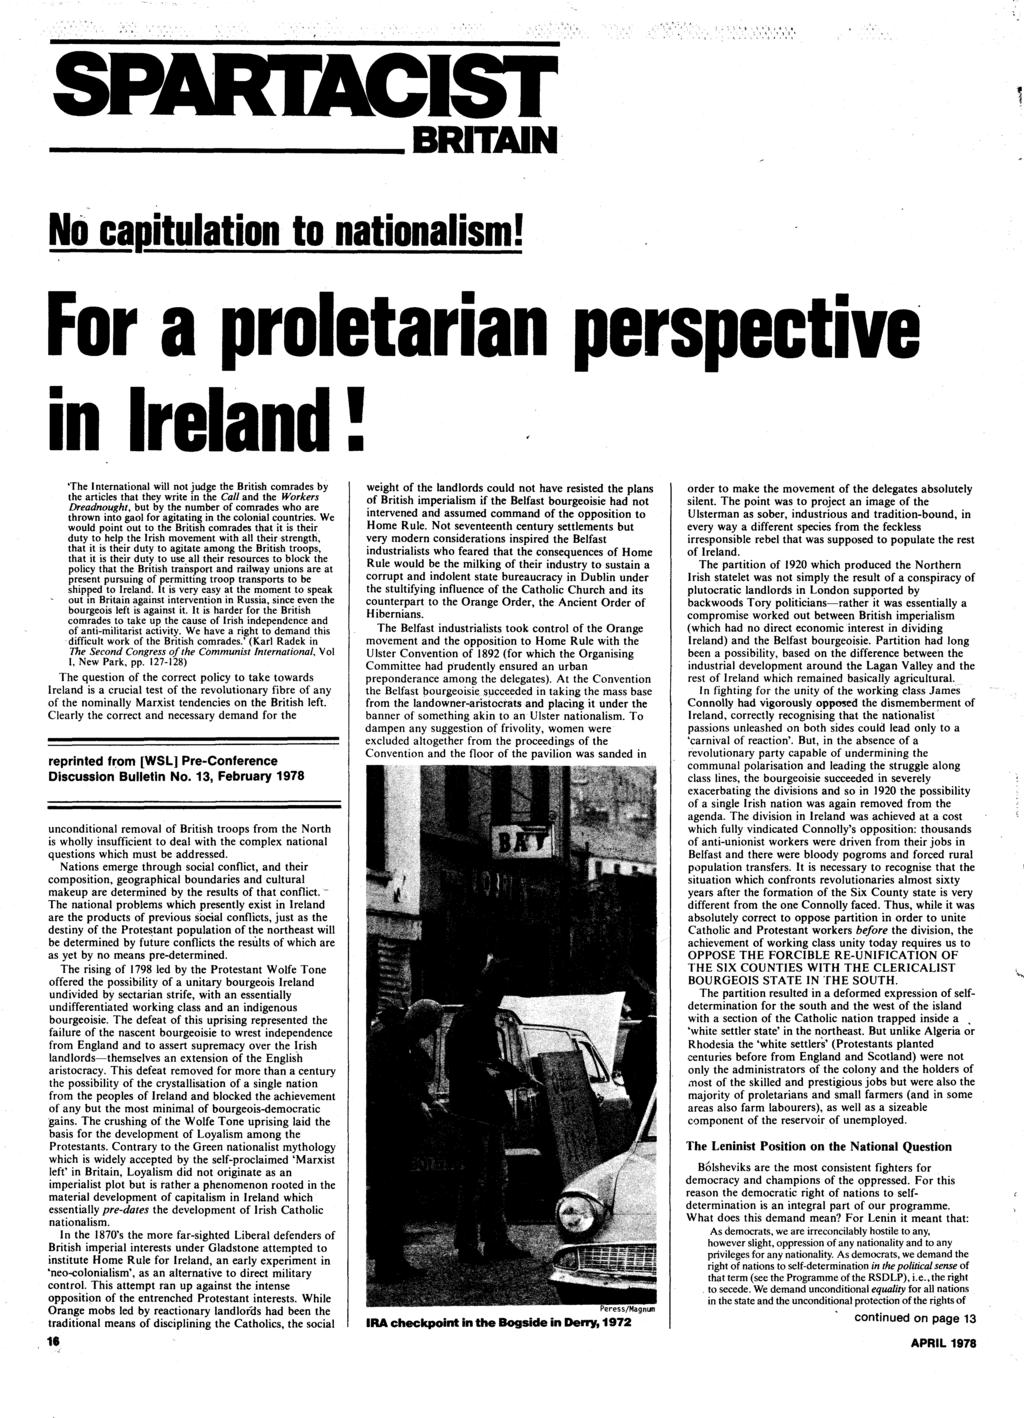 BRITAIN' No cagitulation to.nationalism! For a proletarian perspective in Ireland!